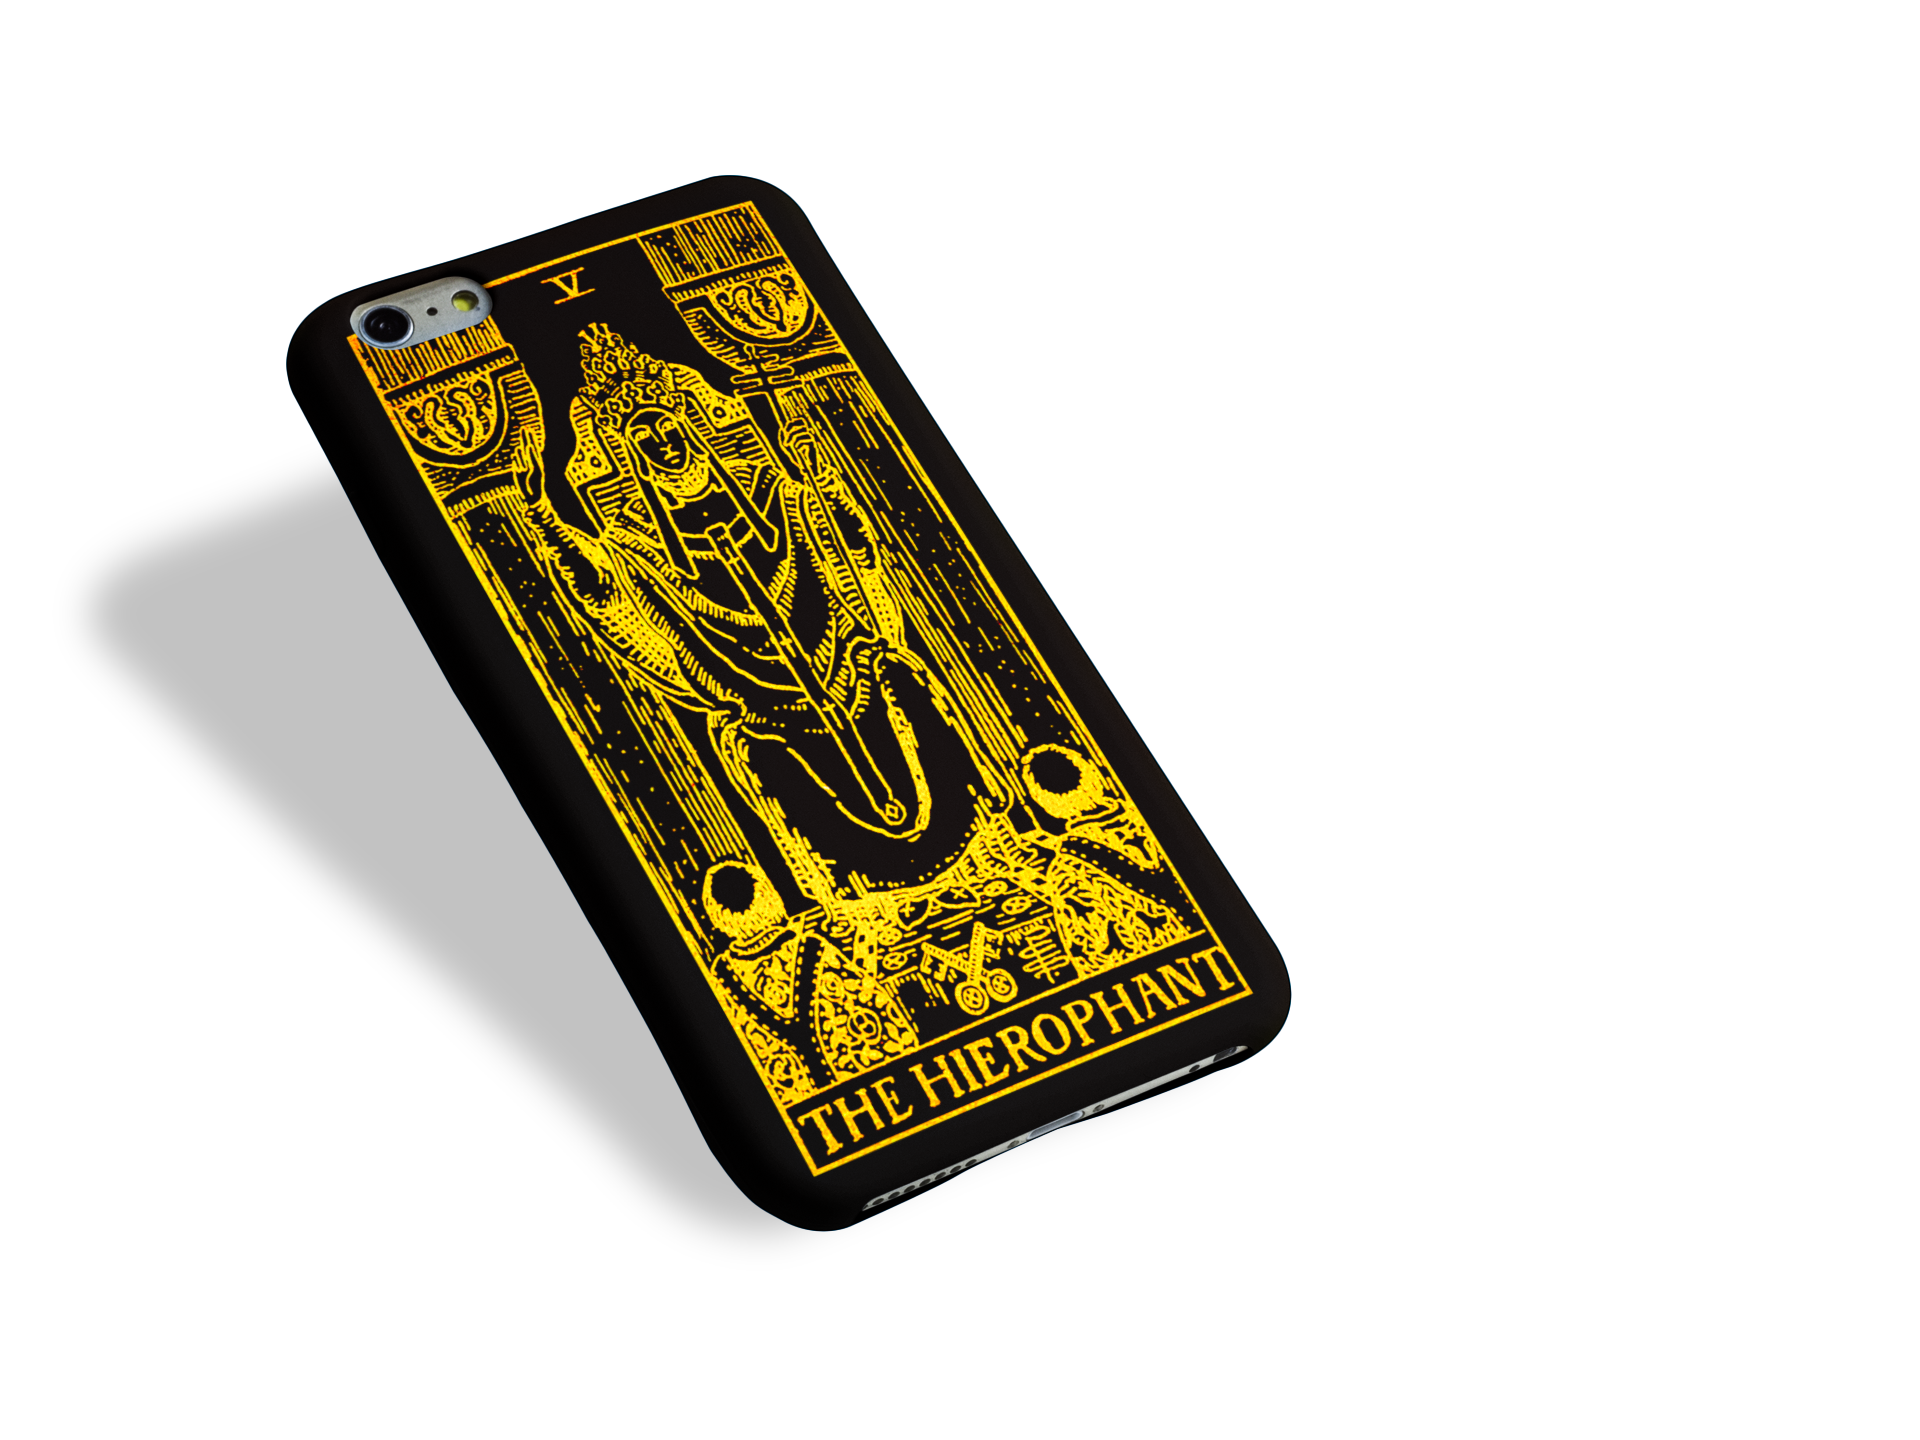 Our Tarot Cards Phone Case Collection is here: The Hierophant Tarot Card Phone Case.